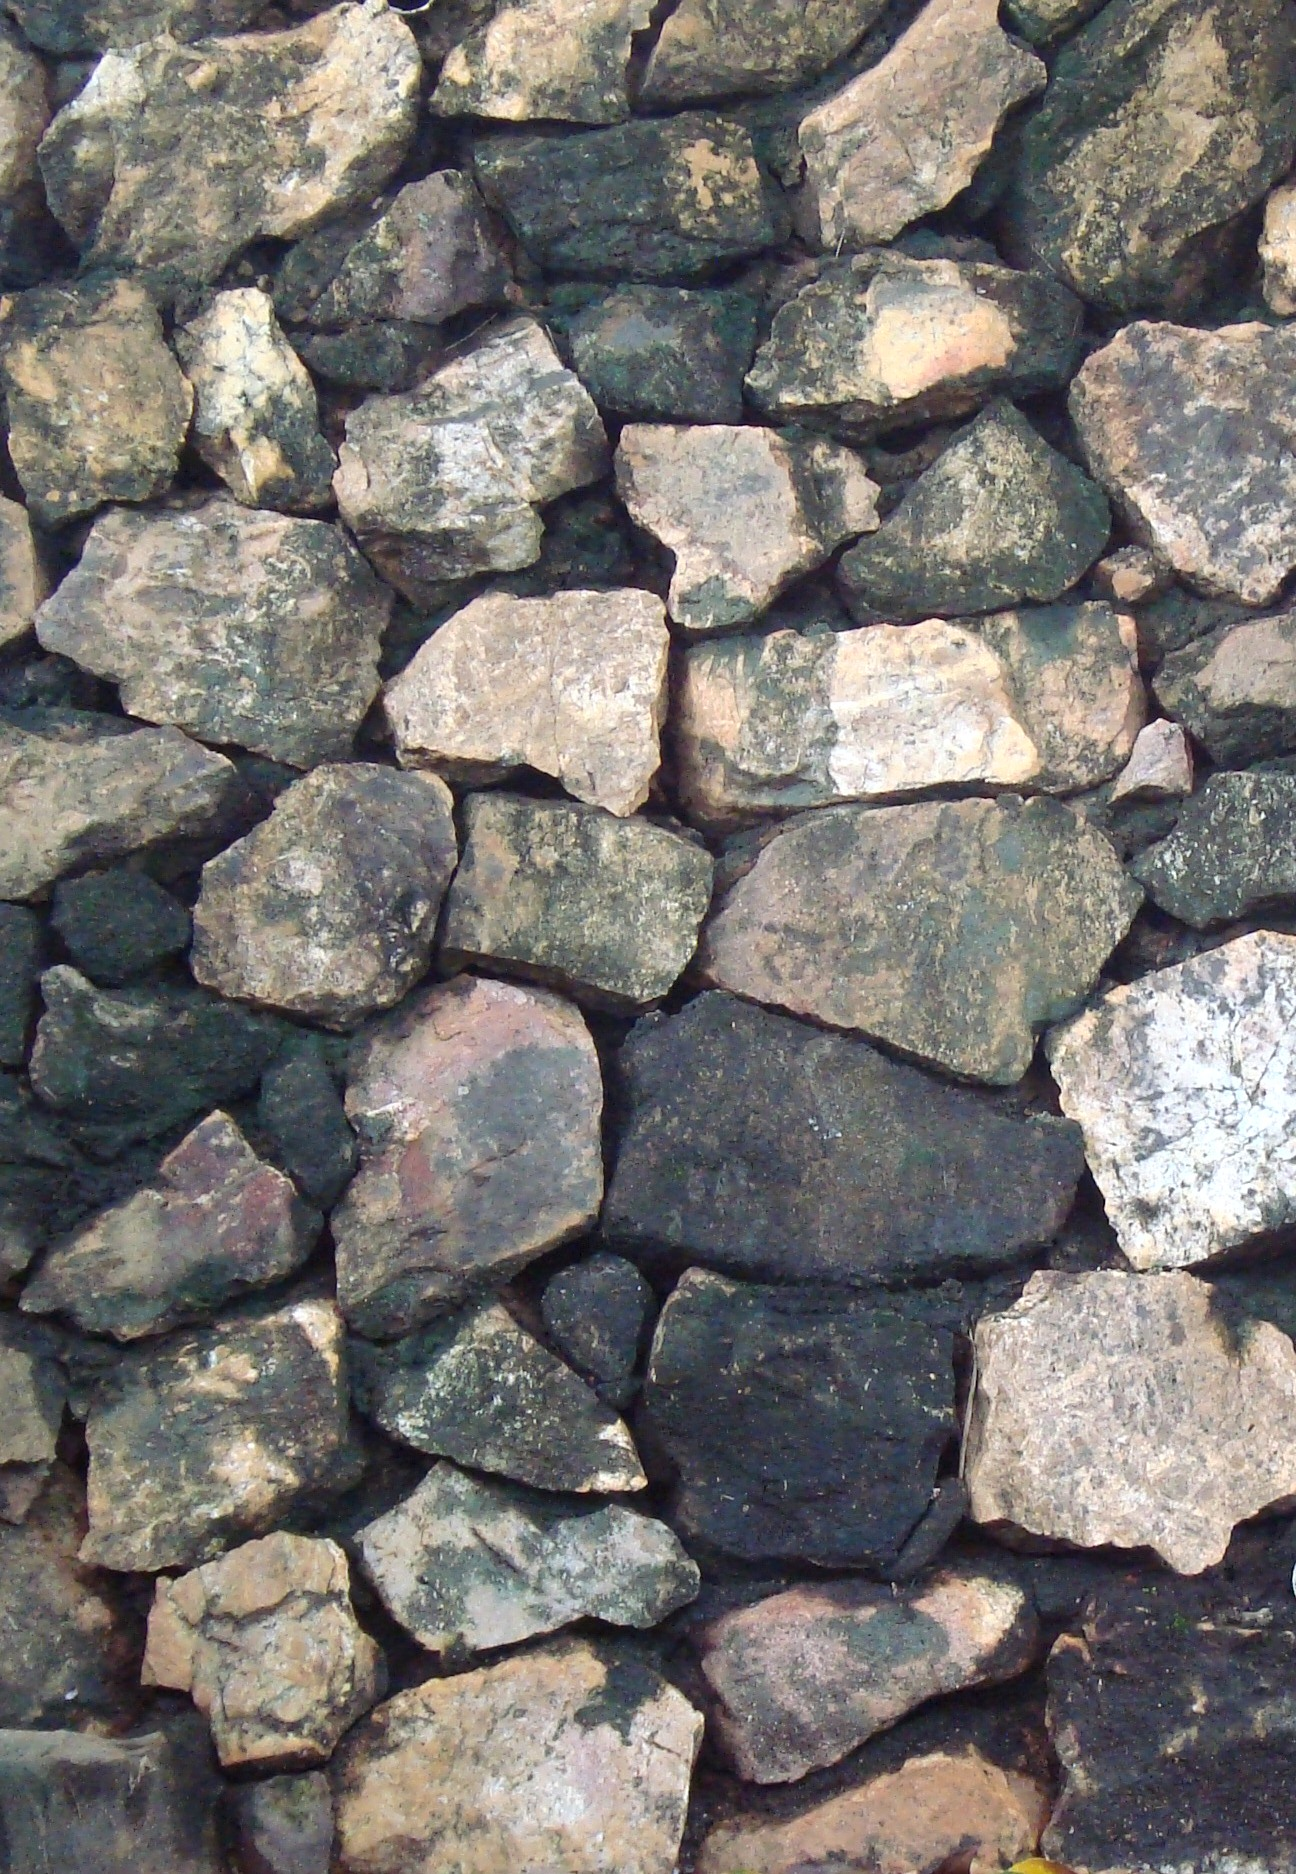 Stone wall background, Abstract, Dry, Grey, Pile, HQ Photo